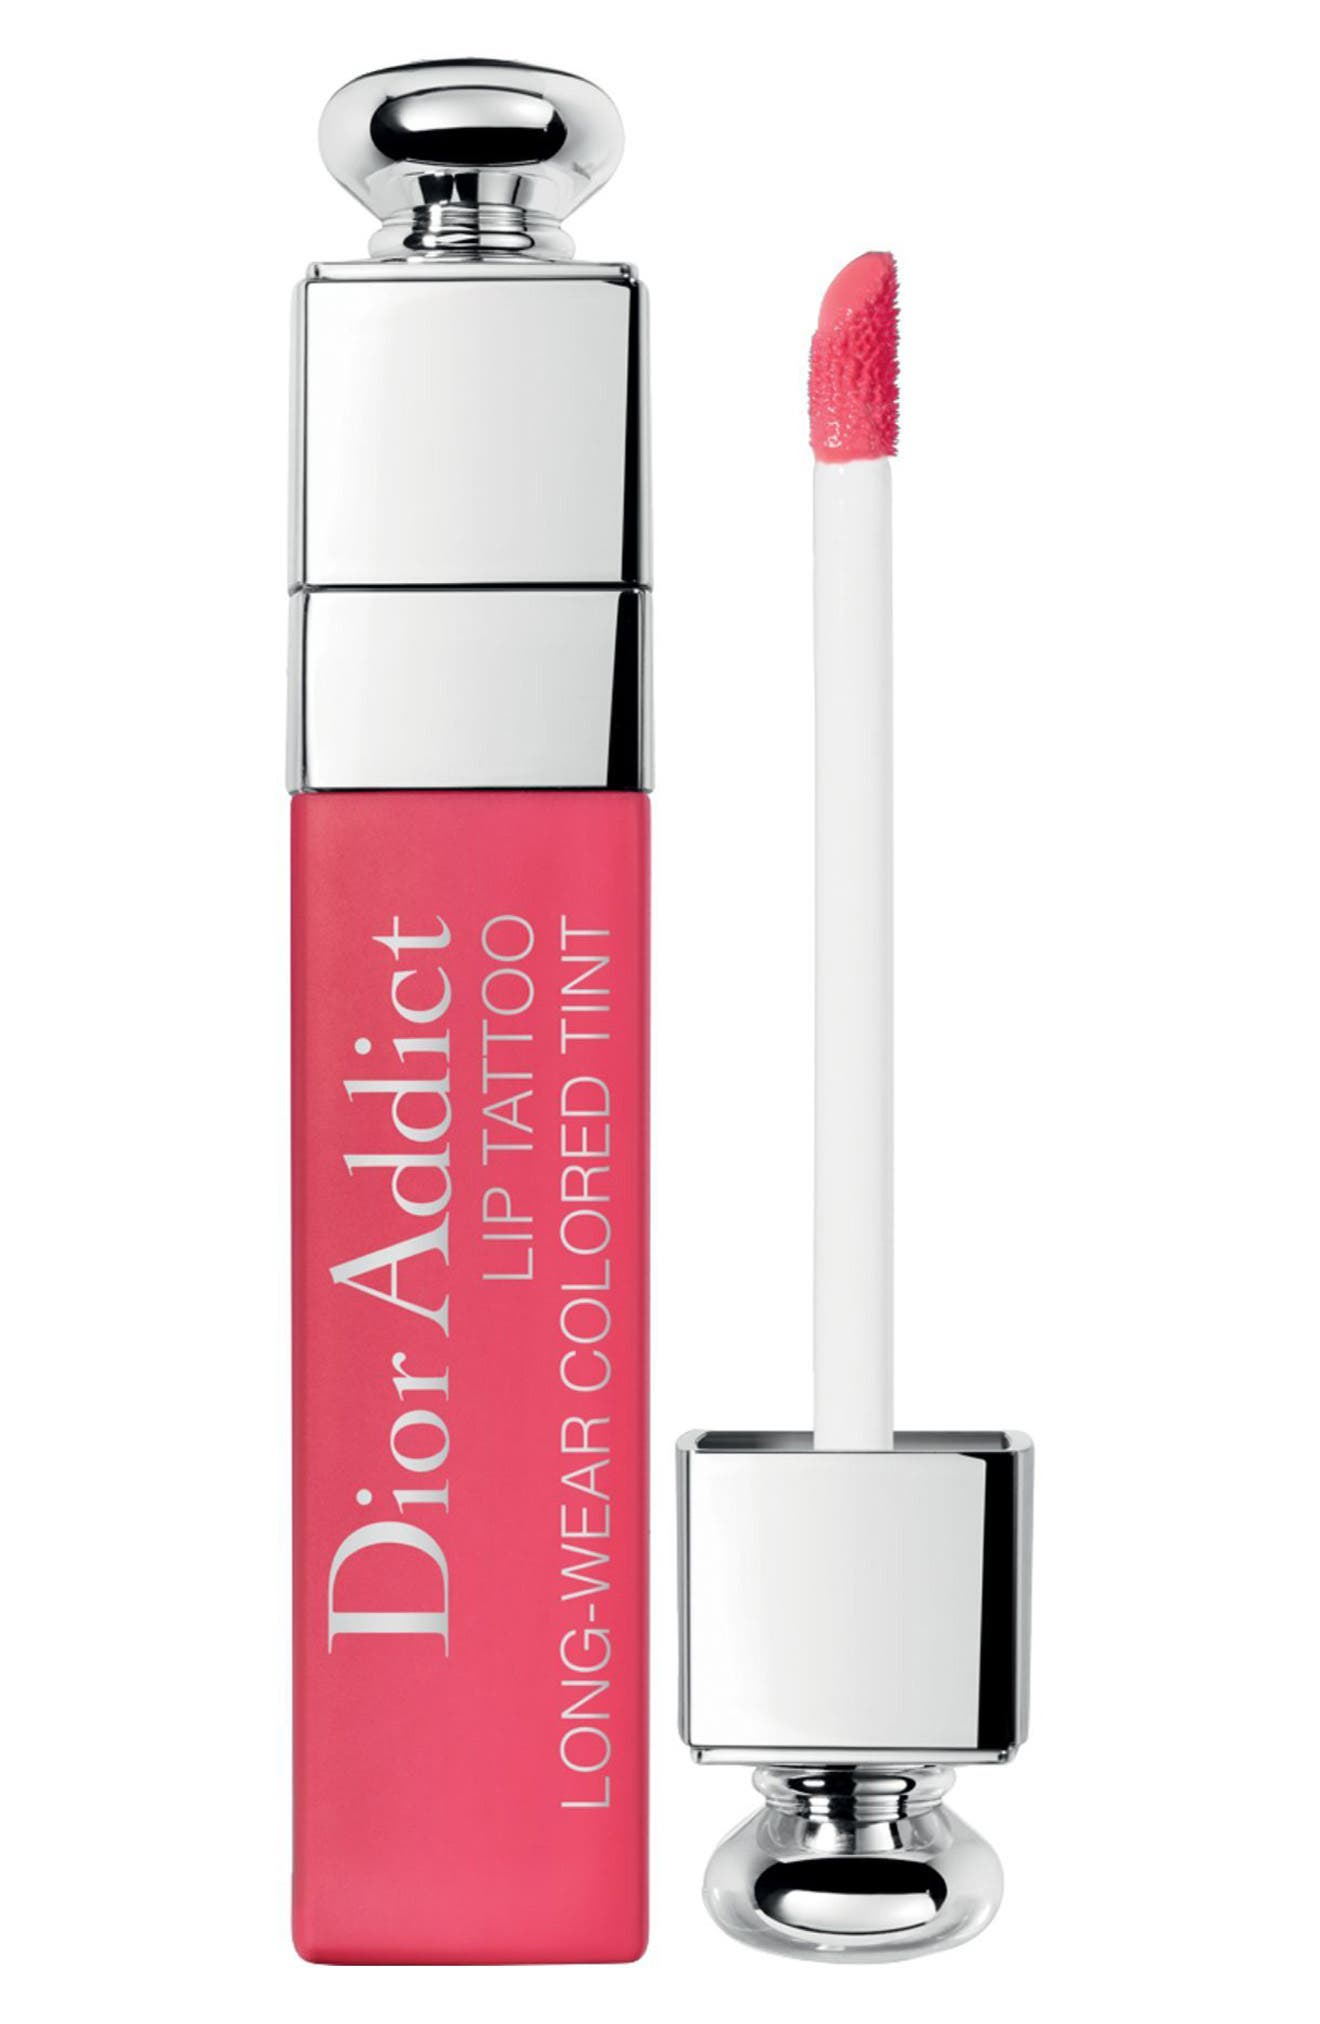 Dior Addict Lip Tattoo Long-Wearing Color Tint - 761 Natural Cherry